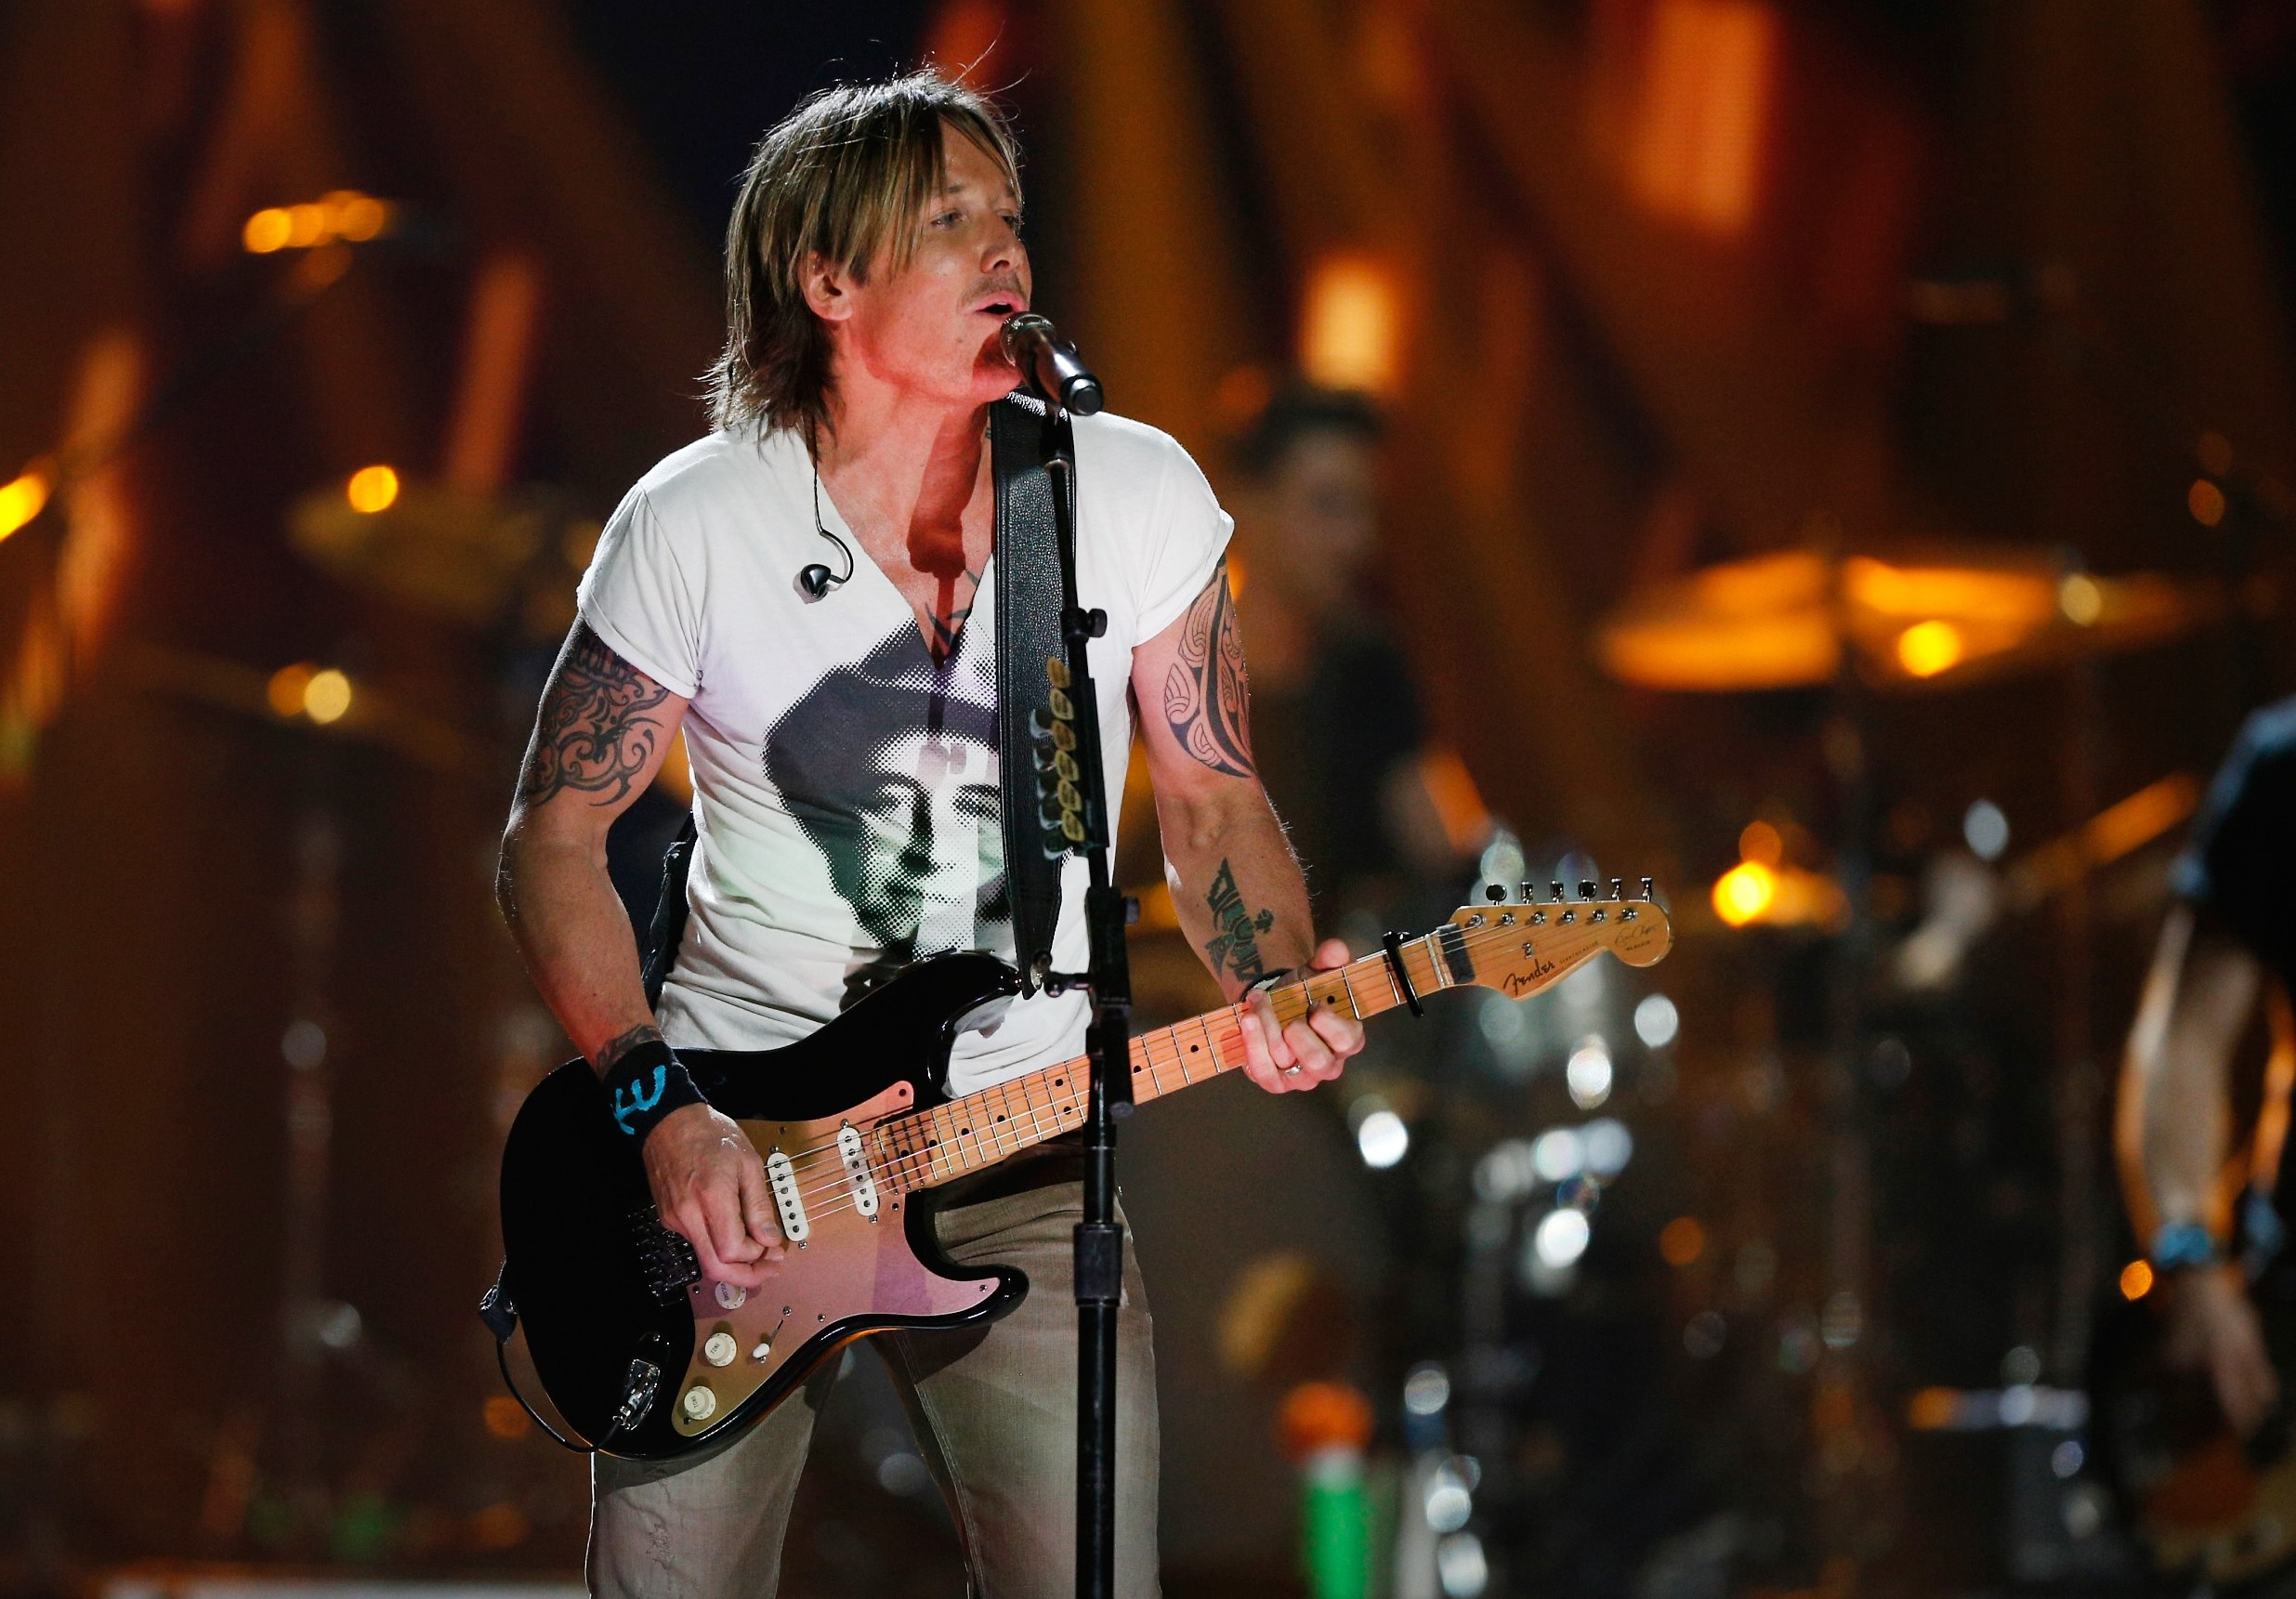 Keith Urban Maren Morris And More To Play Hgtv Lodge At Cma Fest